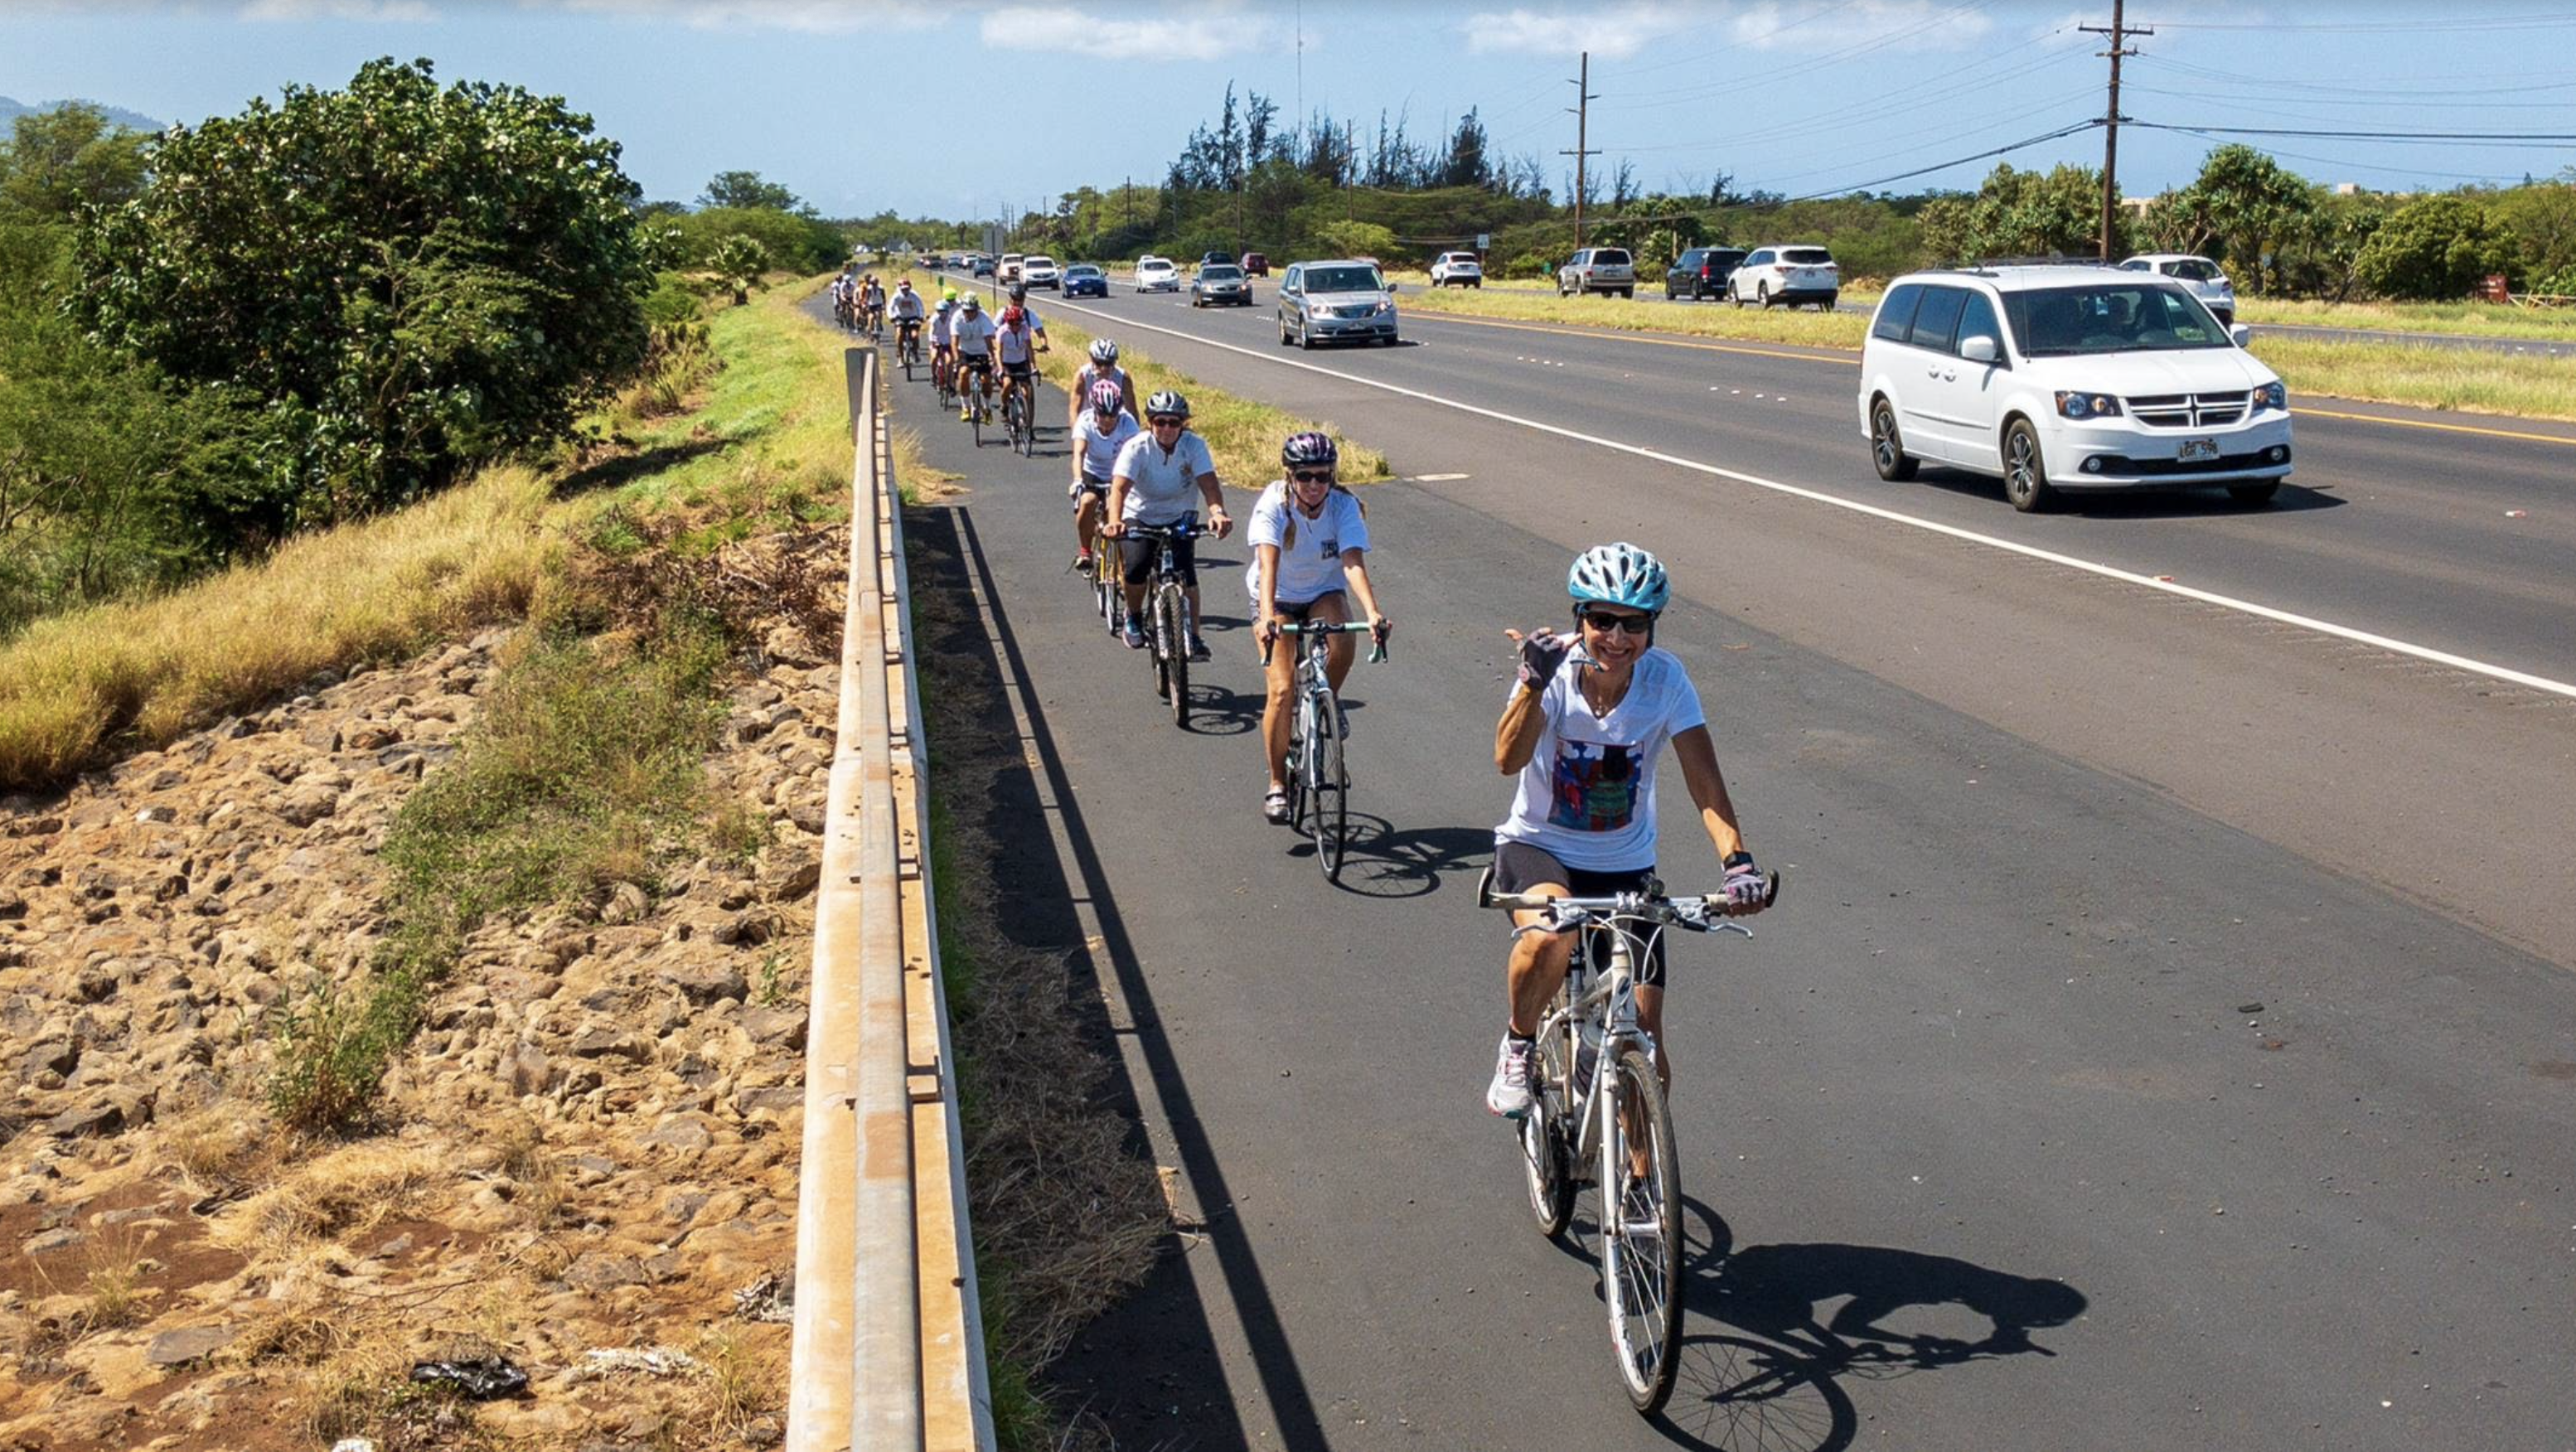 Maui Memorial Ride Held in Honor of Cyclists who Have Been Injured or Killed